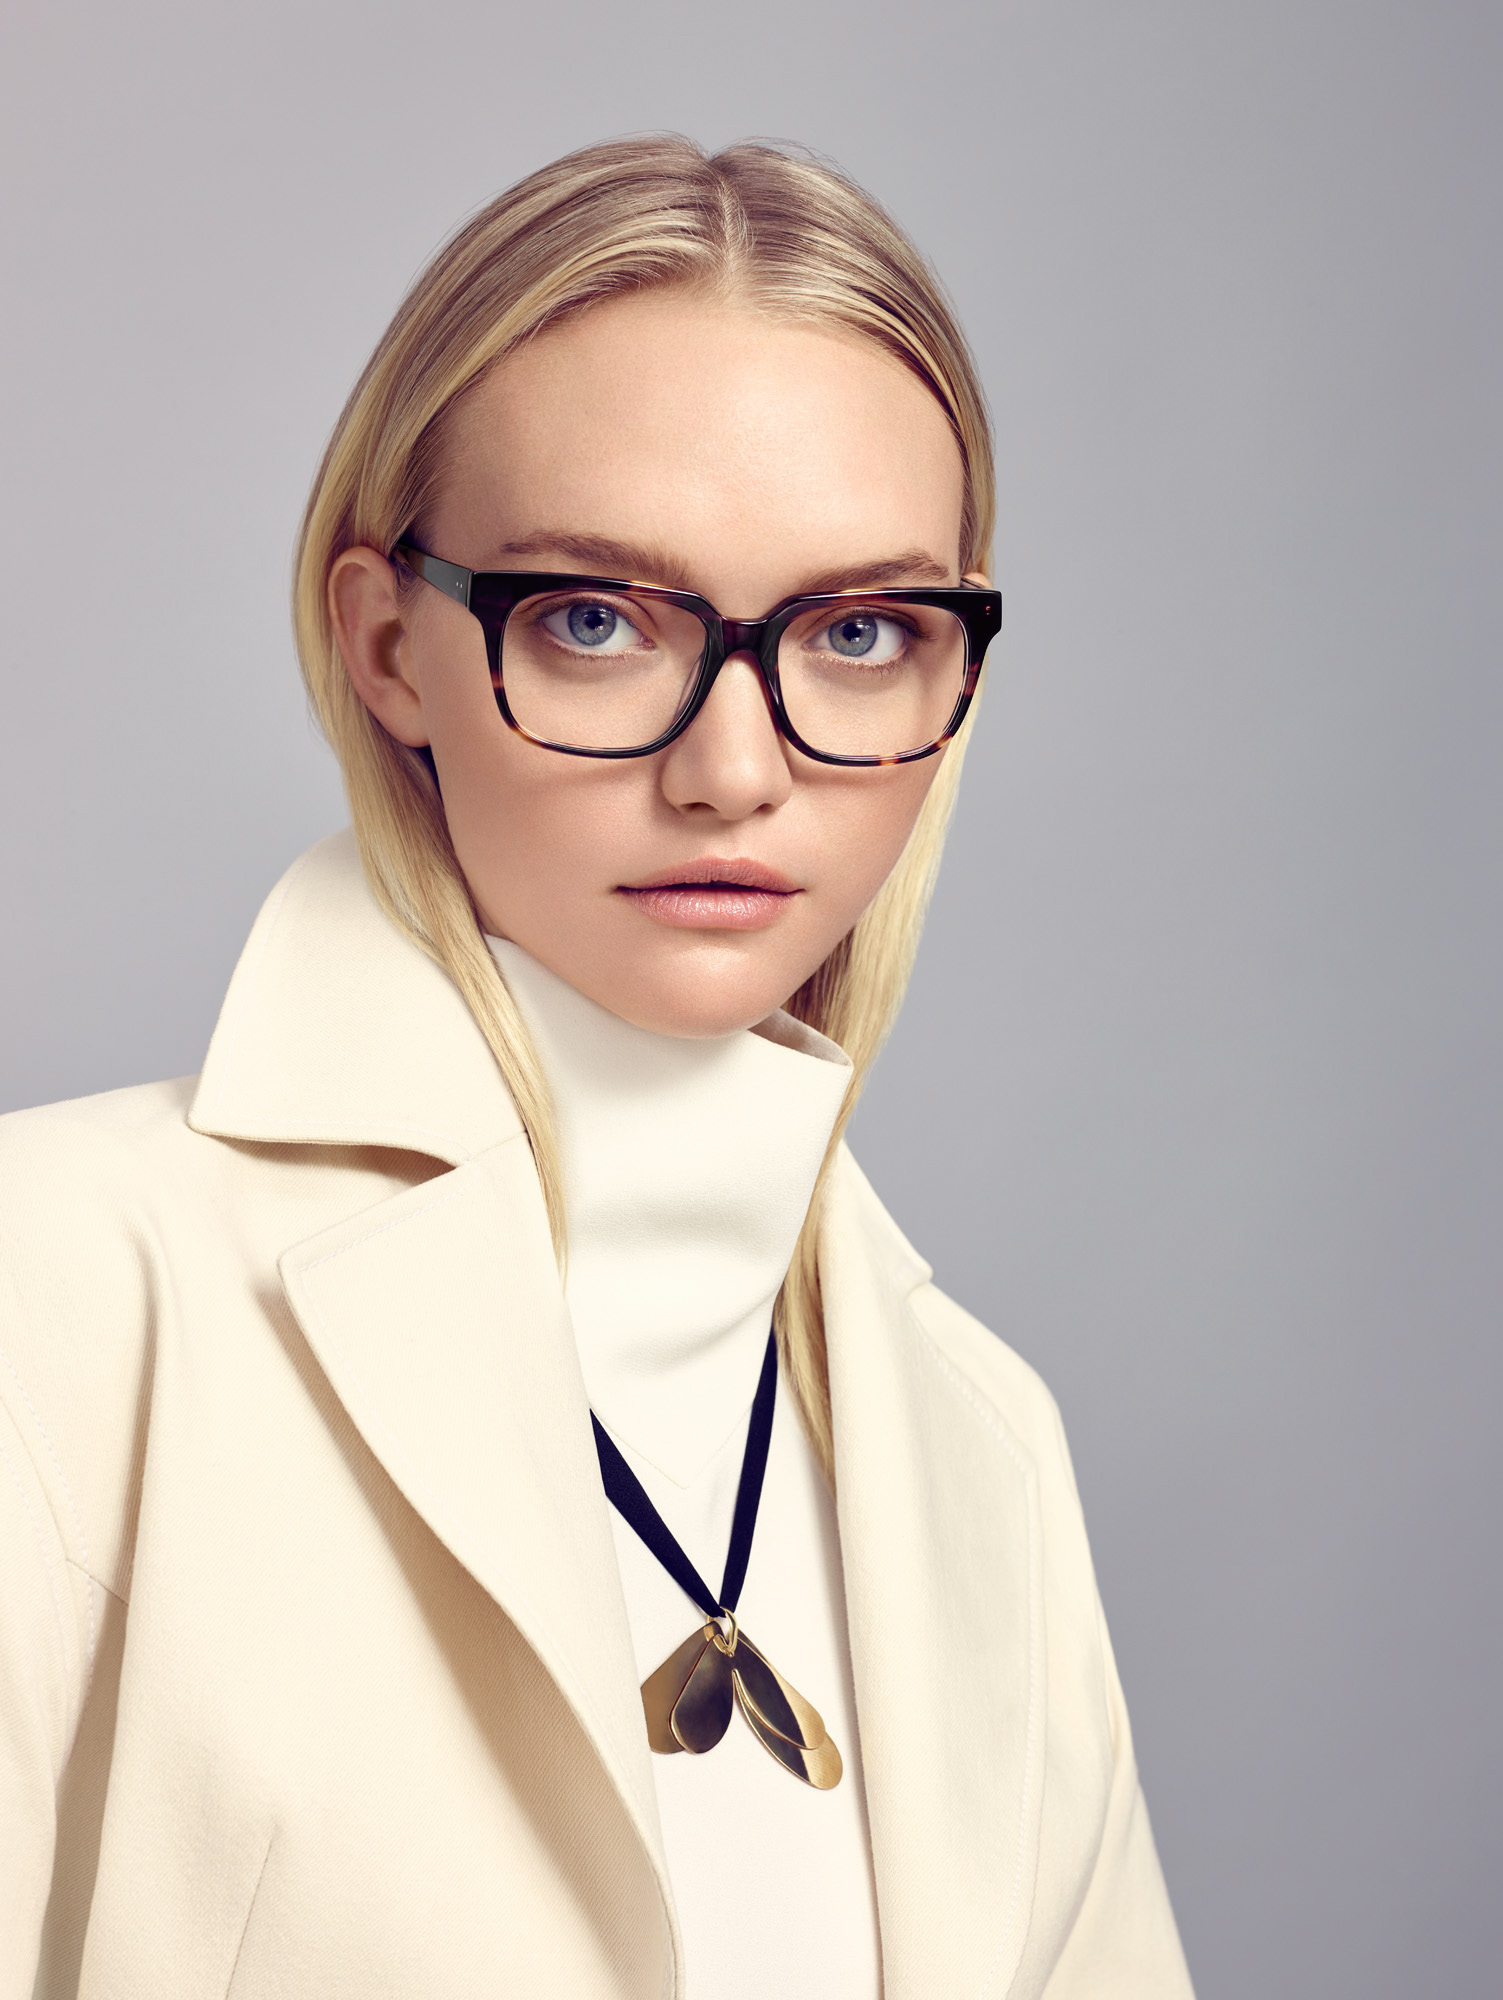 Gemma wears ELLERY 02 TORT glasses SKU 30474635 RRP 2 pairs from $299